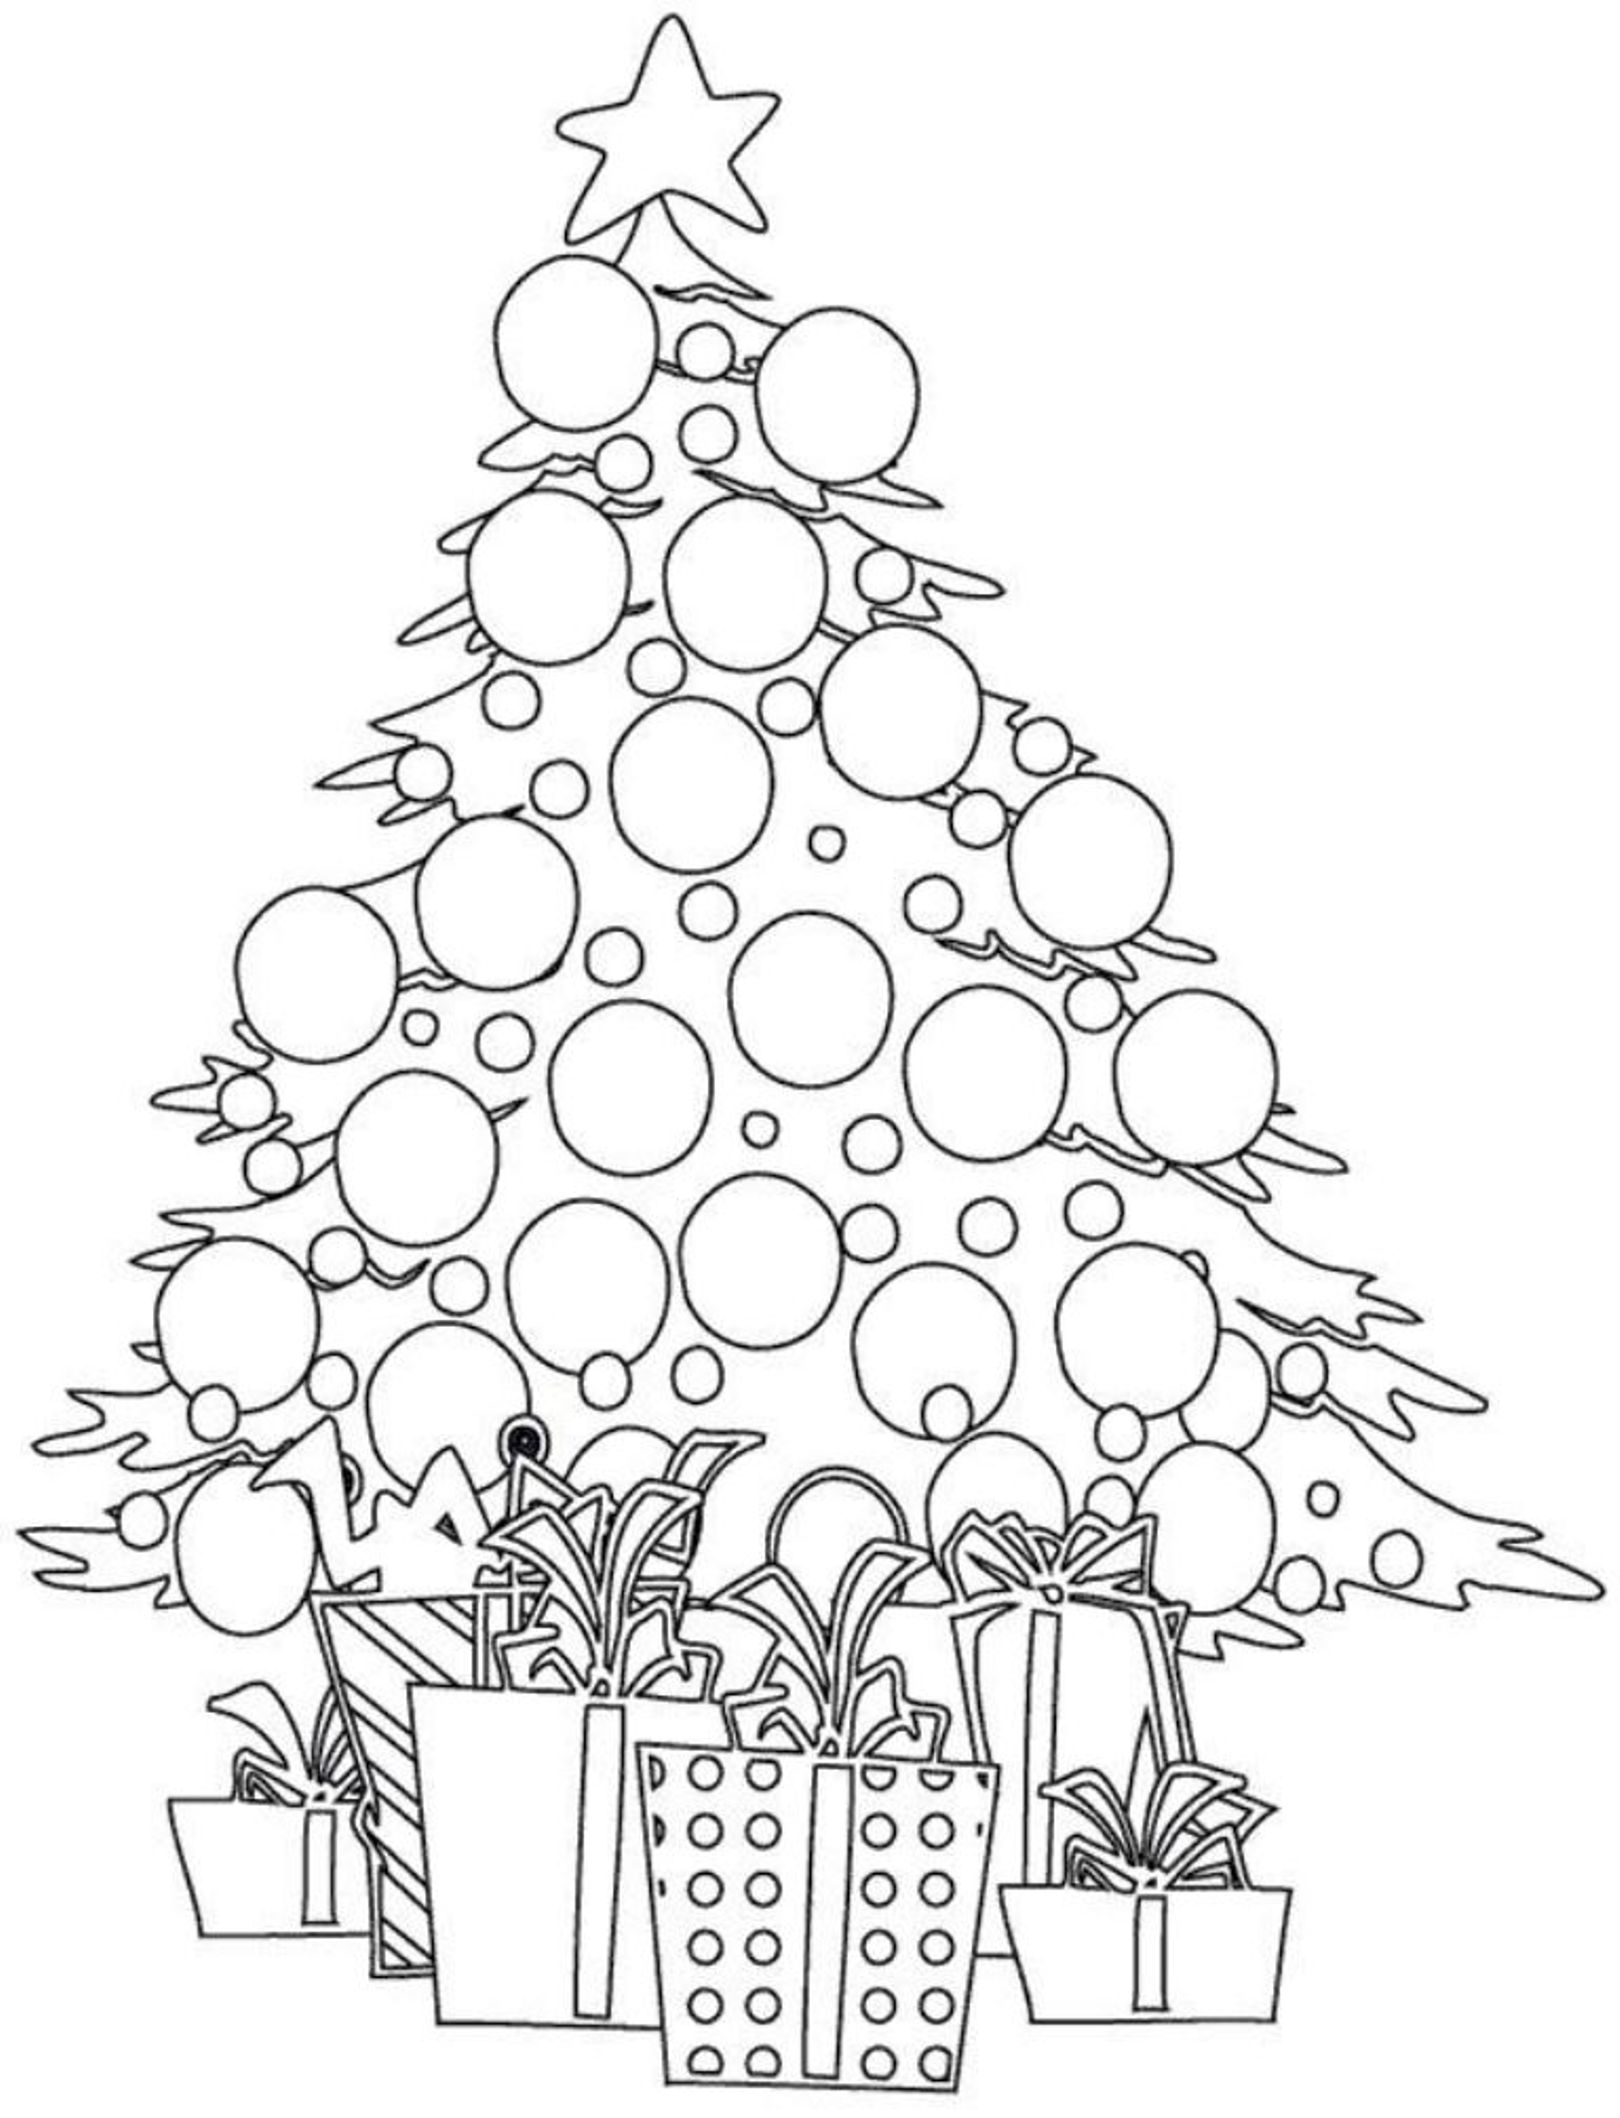 Kids coloring pages christmas trees printable - Christmas Tree Balls Coloring Pages